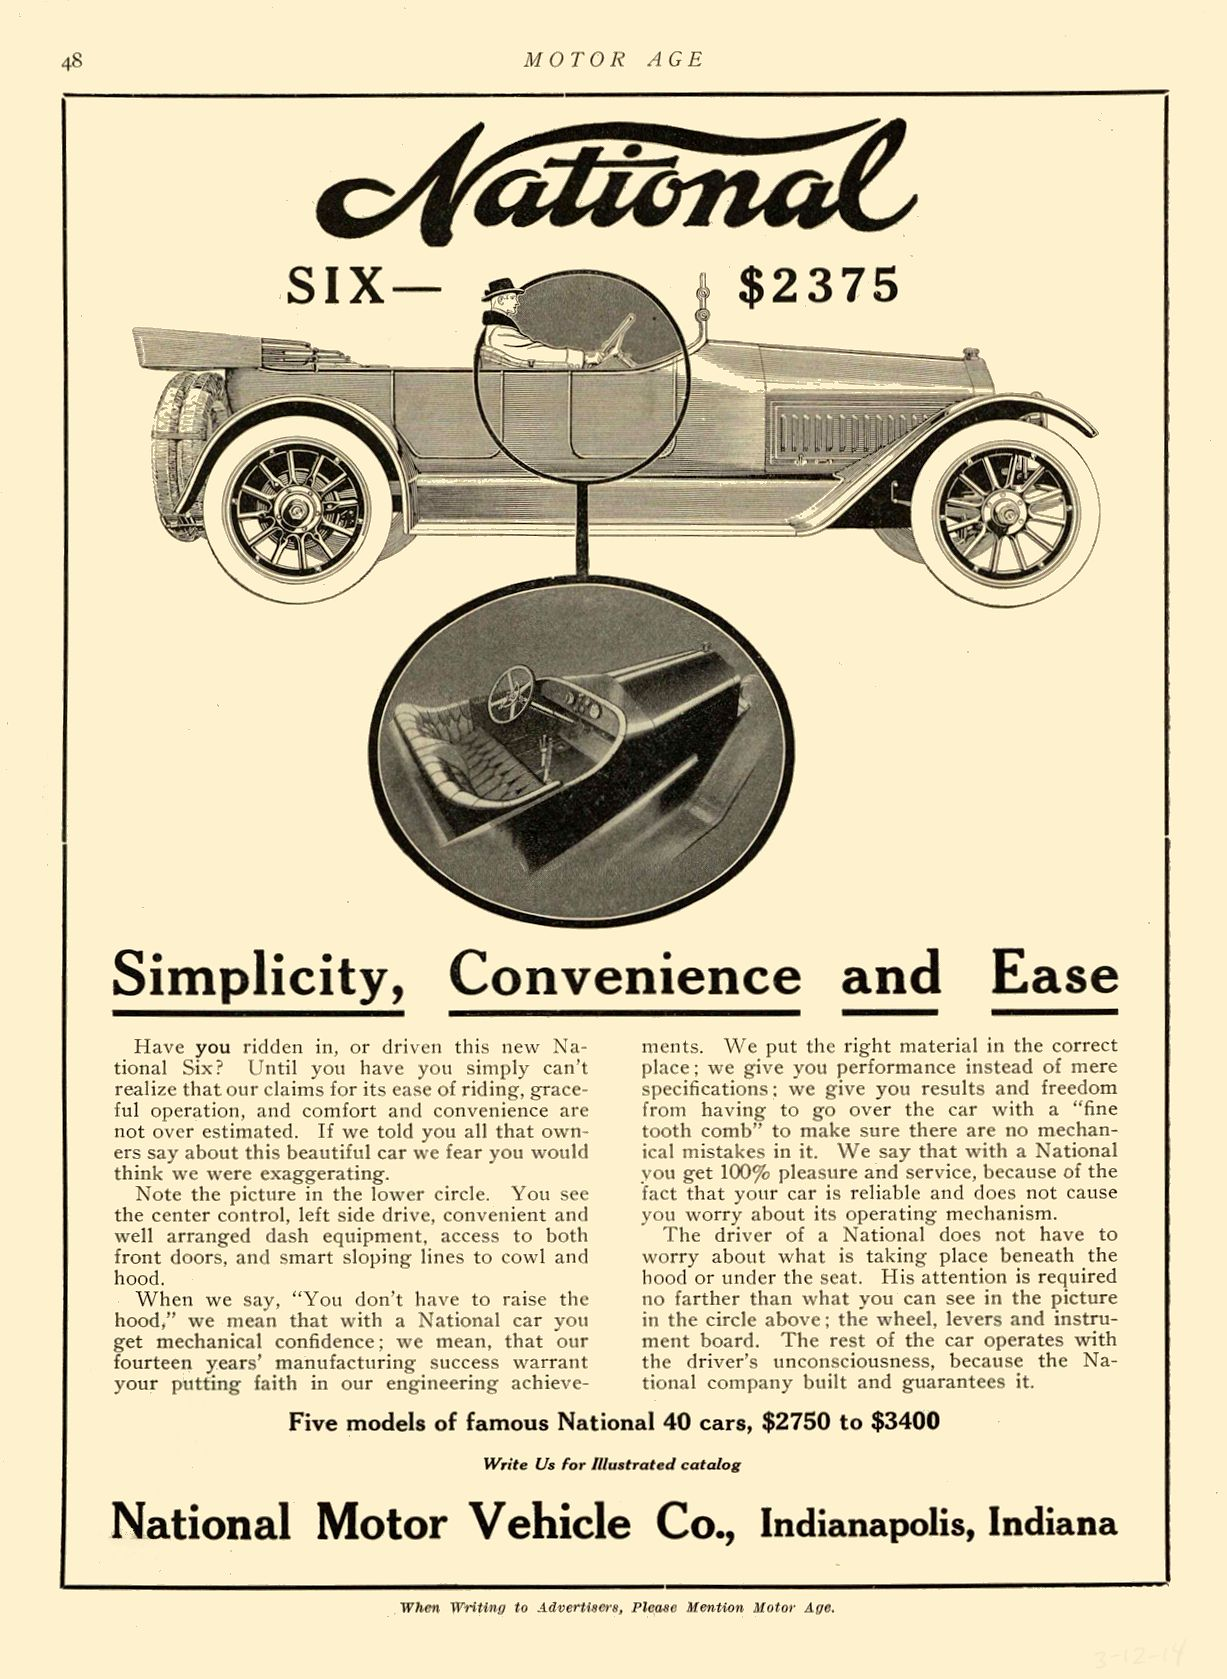 1914 3 12 NATIONAL Simplicity, Convenience and Ease National Motor Vehicle Co. Indianapolis, IND MOTOR AGE March 12, 1914 8.5″x12″ page 48